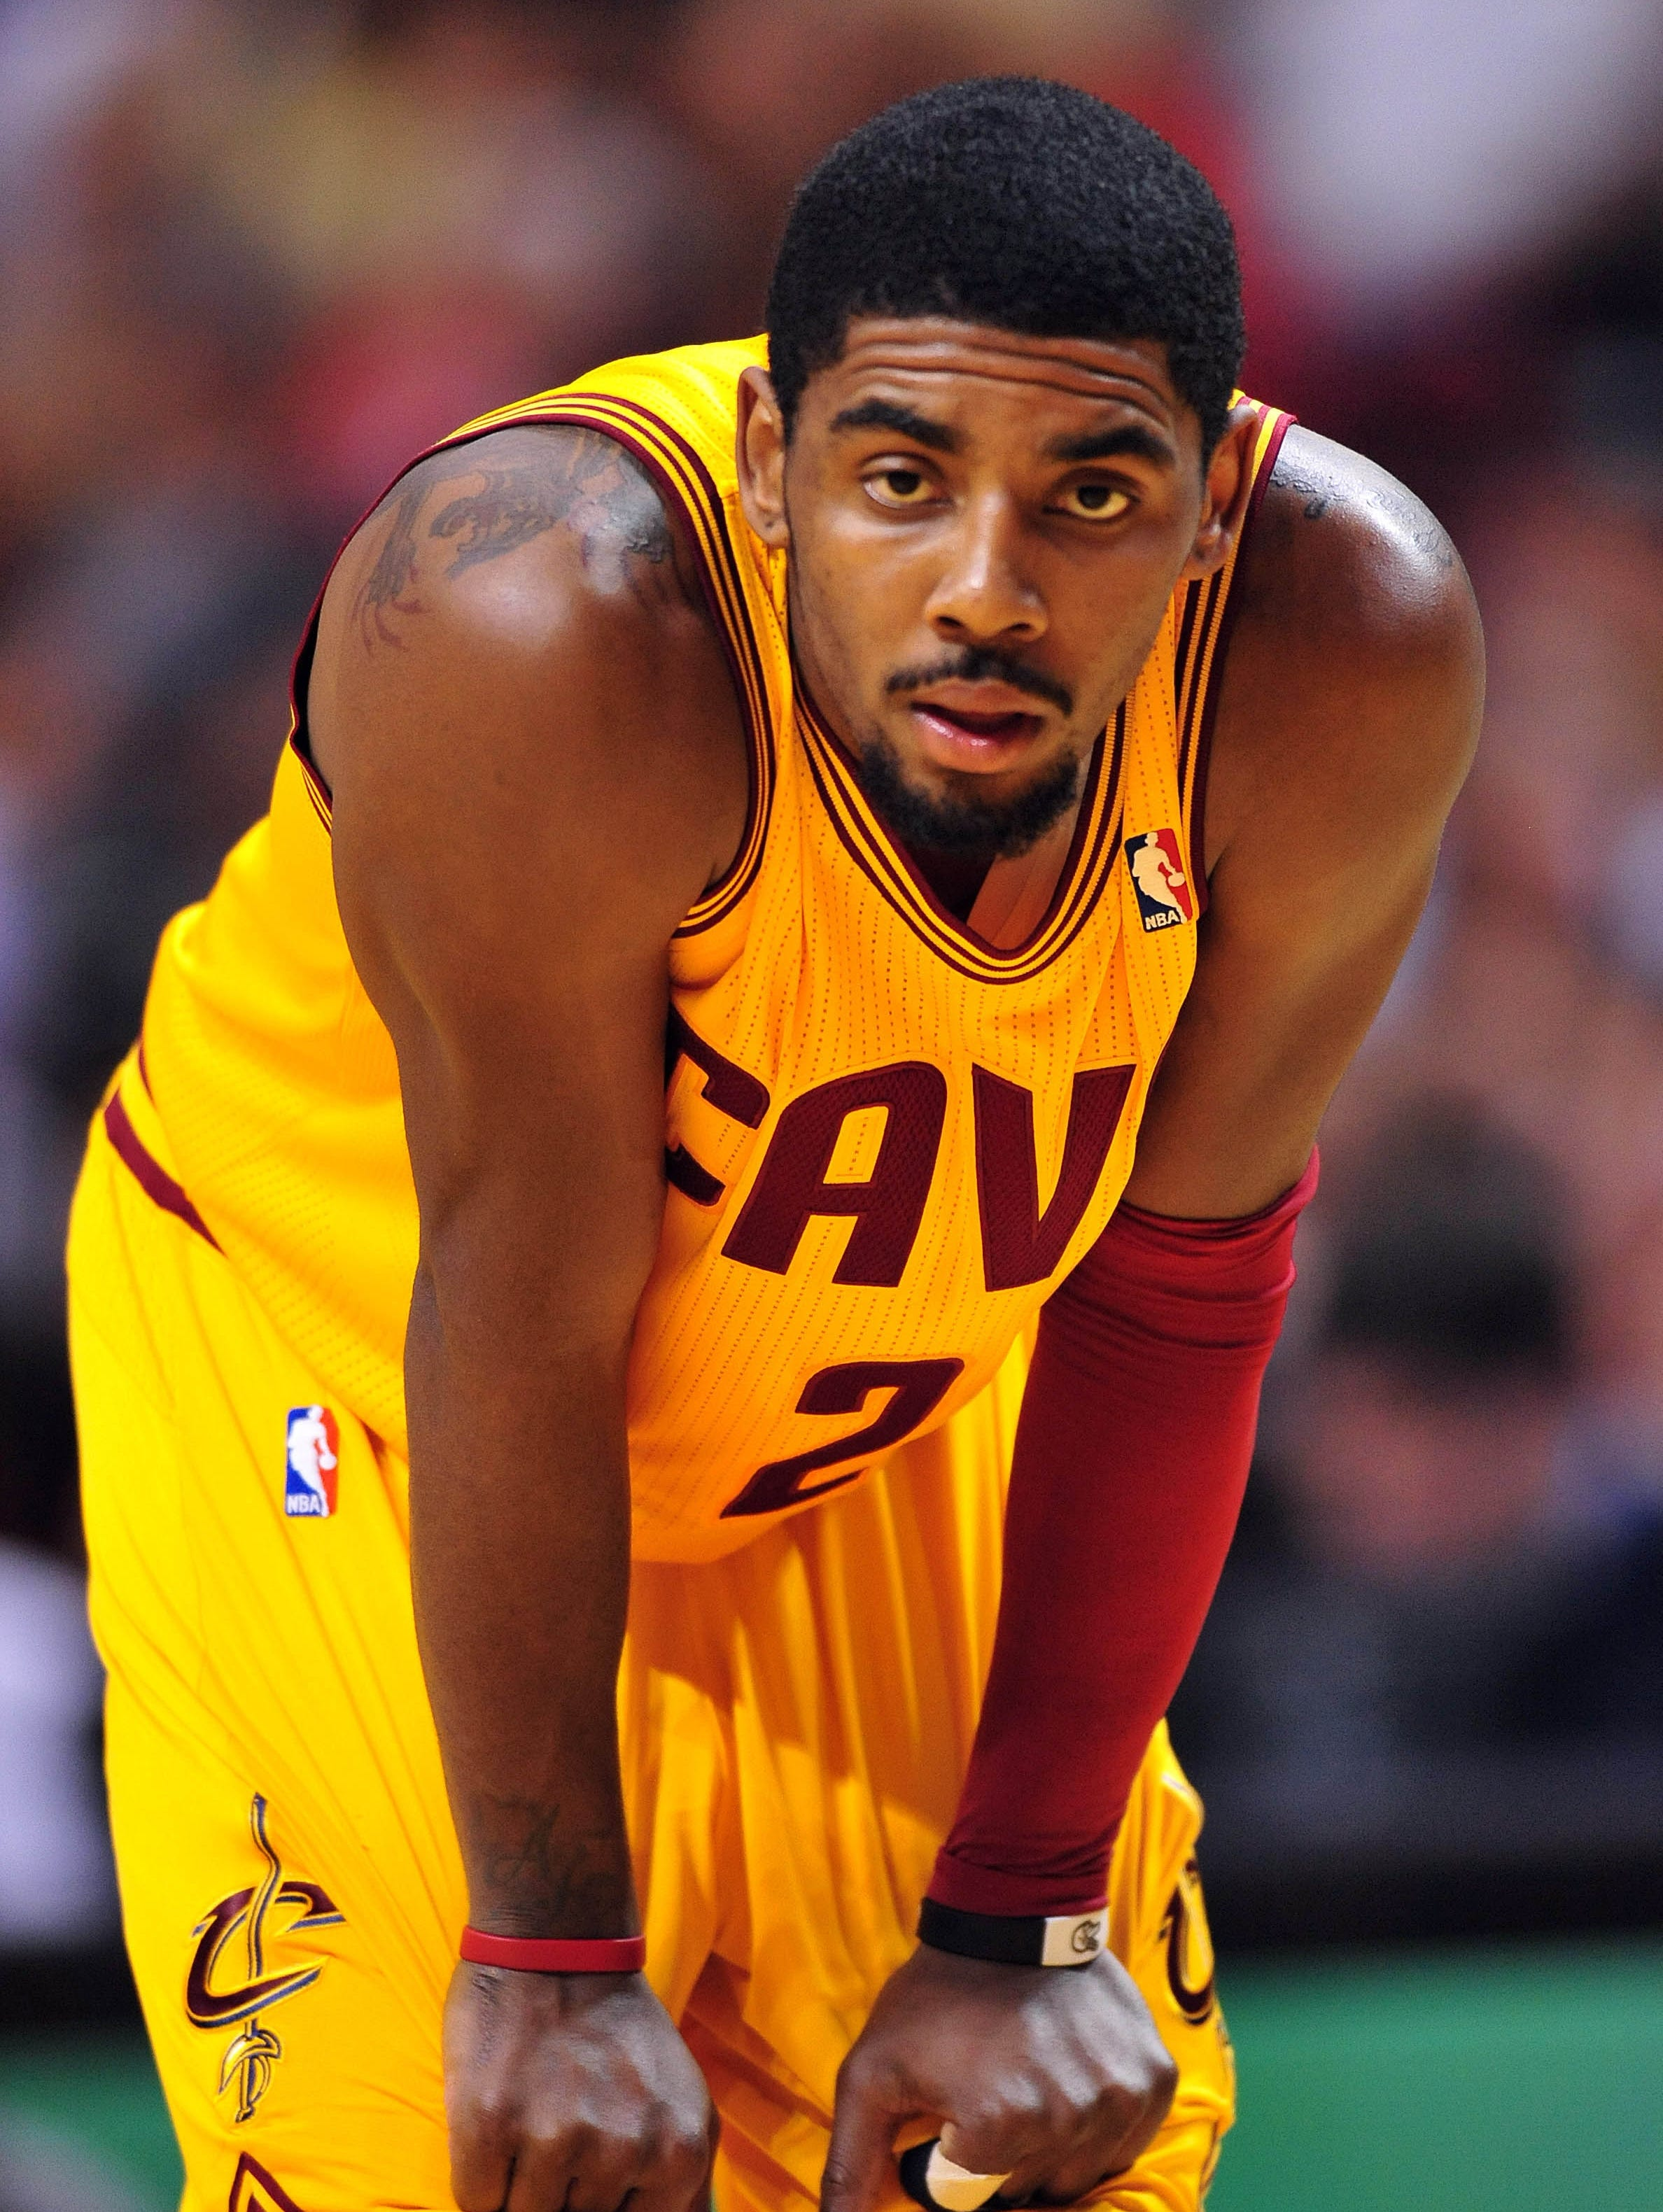 68ff5bffe00 Kyrie Irving  Kyrie Irving Scores a Career-High 57 Points - Sheridan ...